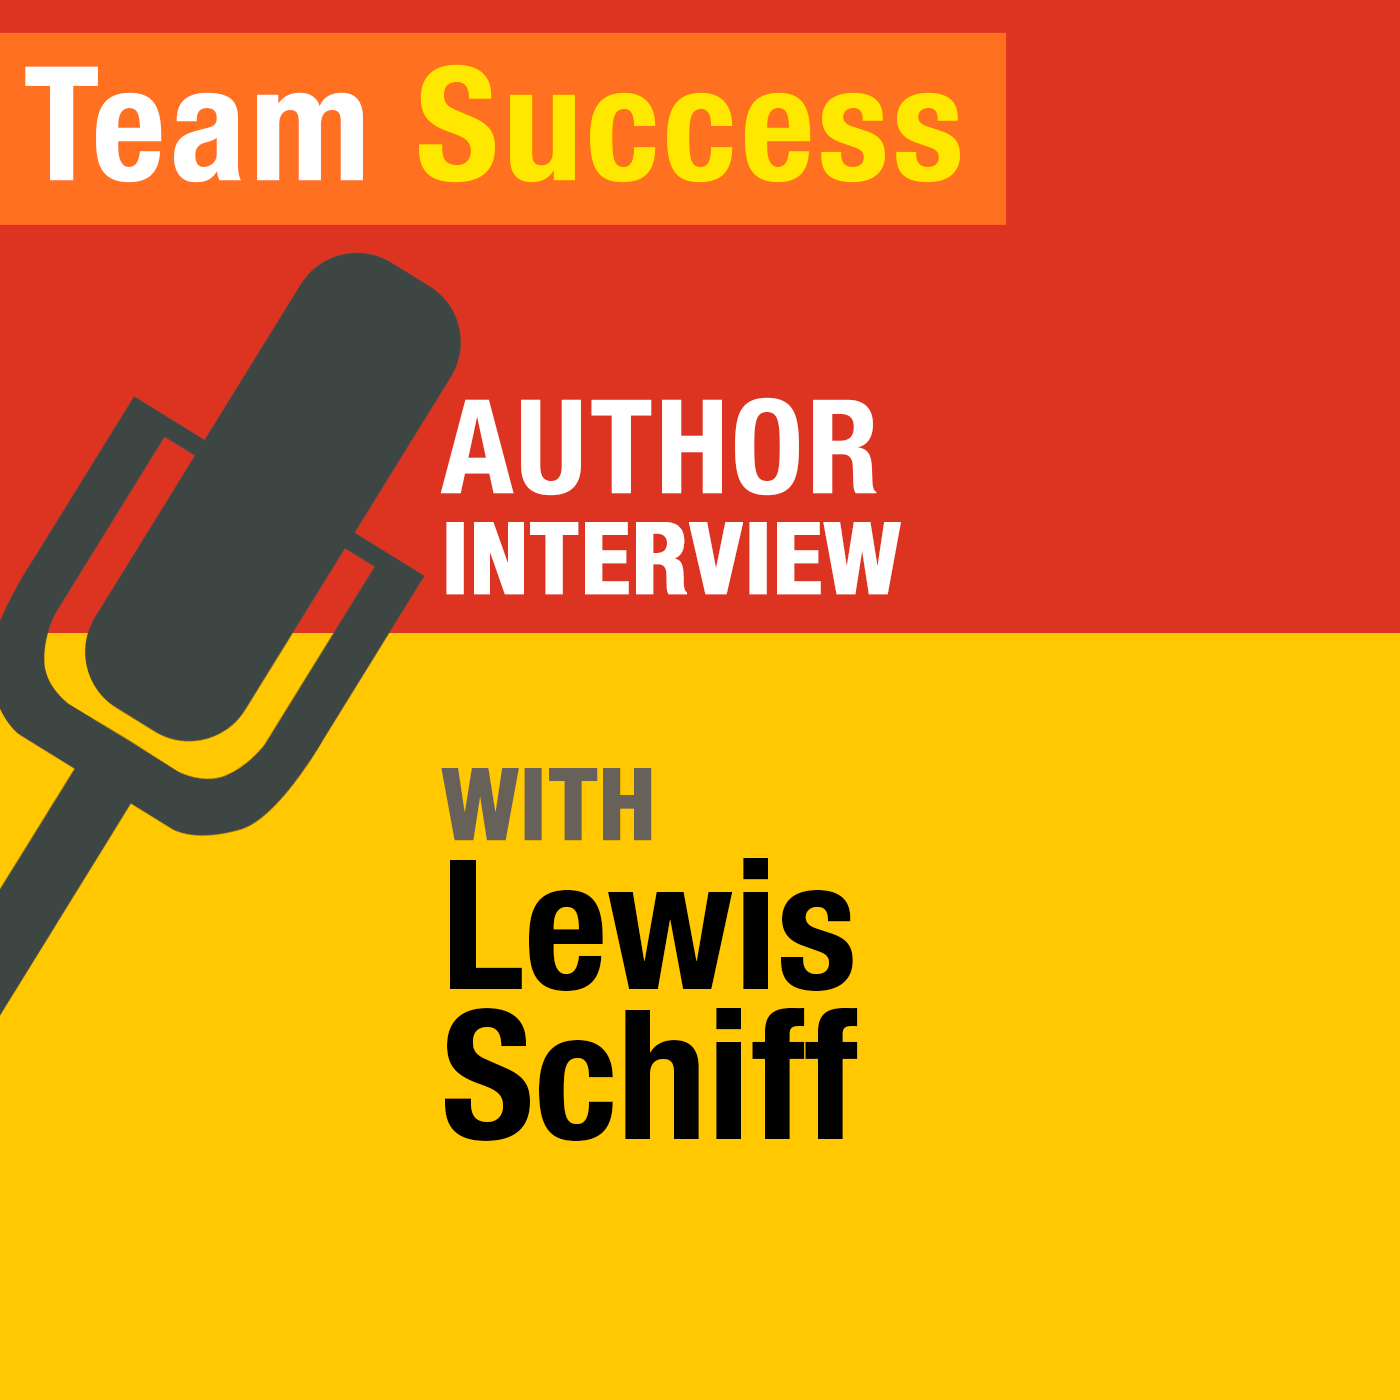 An Interview With Lewis Schiff - Team Success Podcast